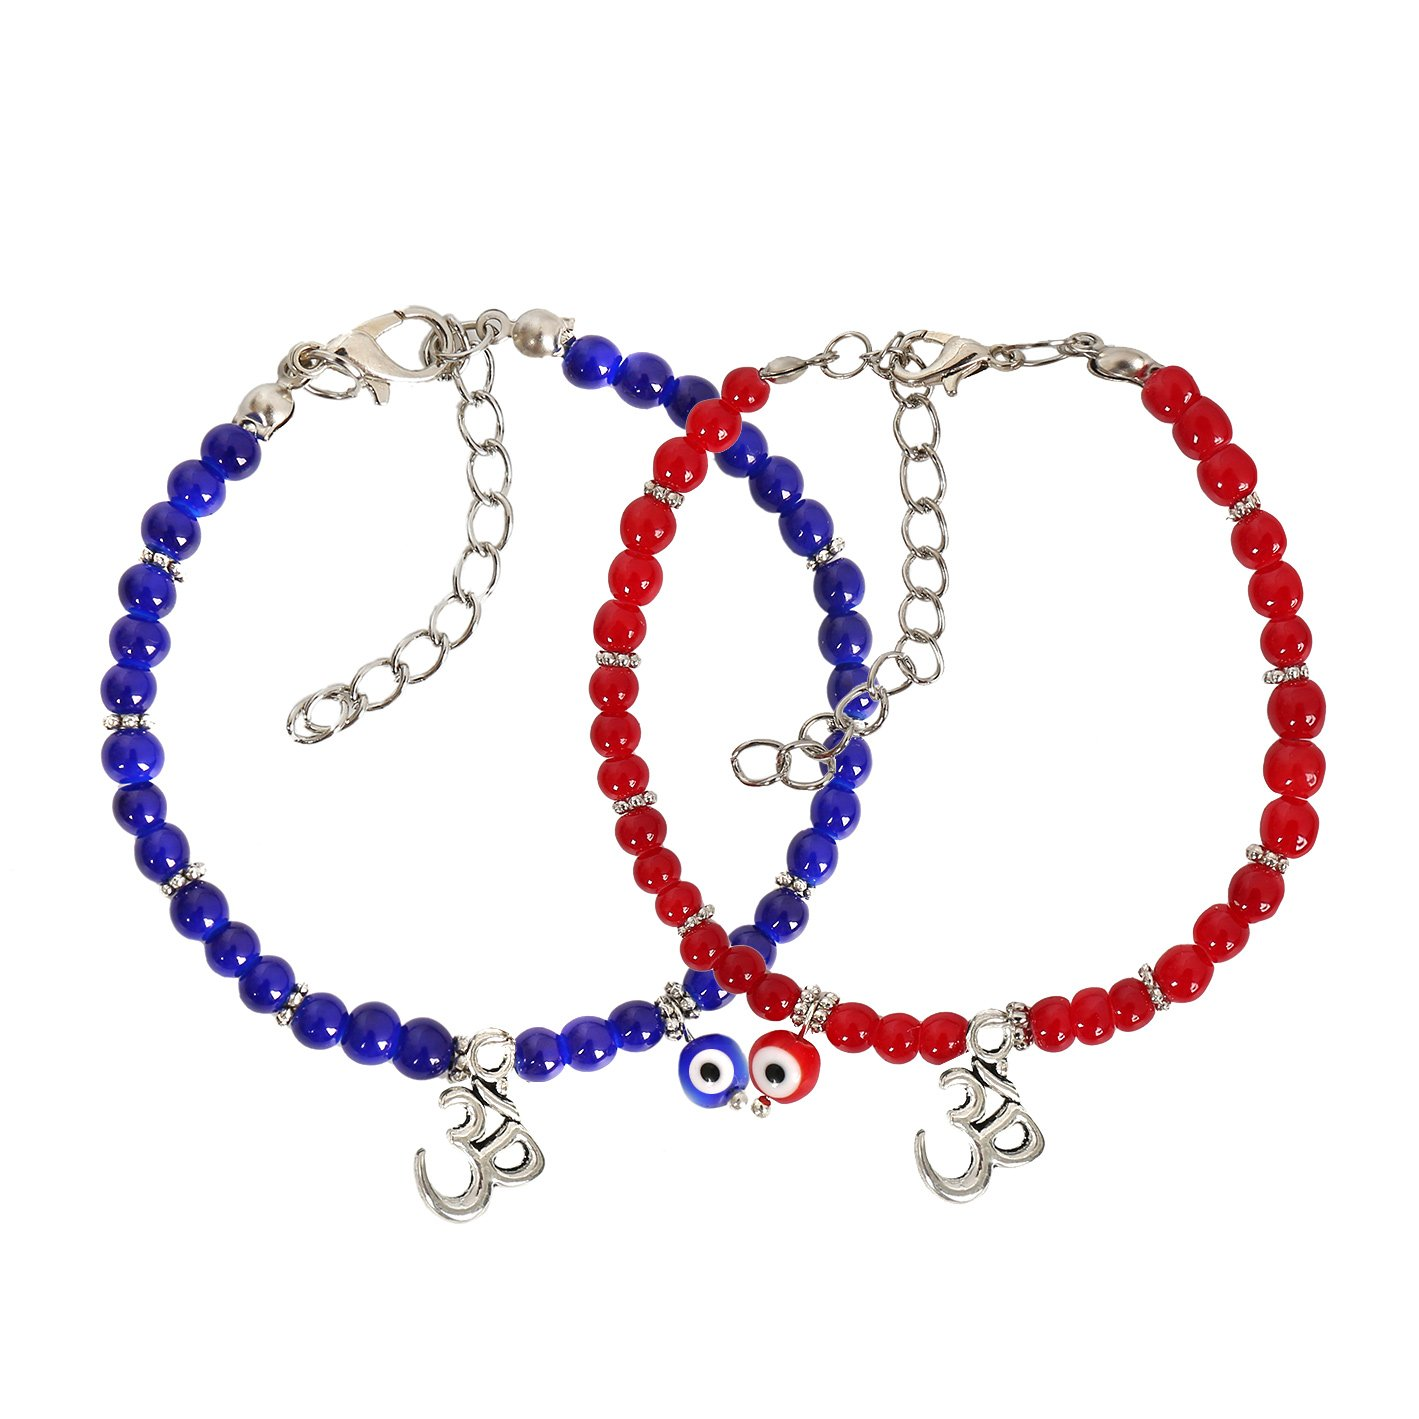 Evil Eye Protection Love Couples Amulets Set Royal Blue Red Accents OM Tibetan Spiritual Bracelets